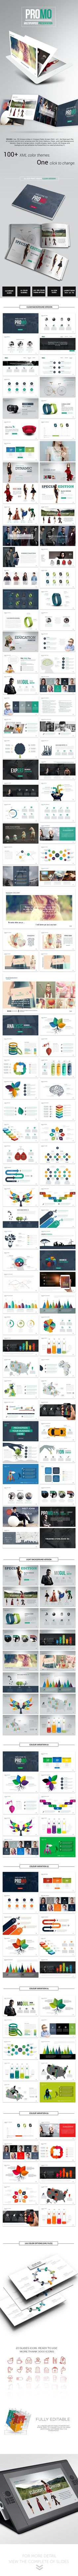 Promo - Multipurpose Promotion PowerPoint #promotion #product